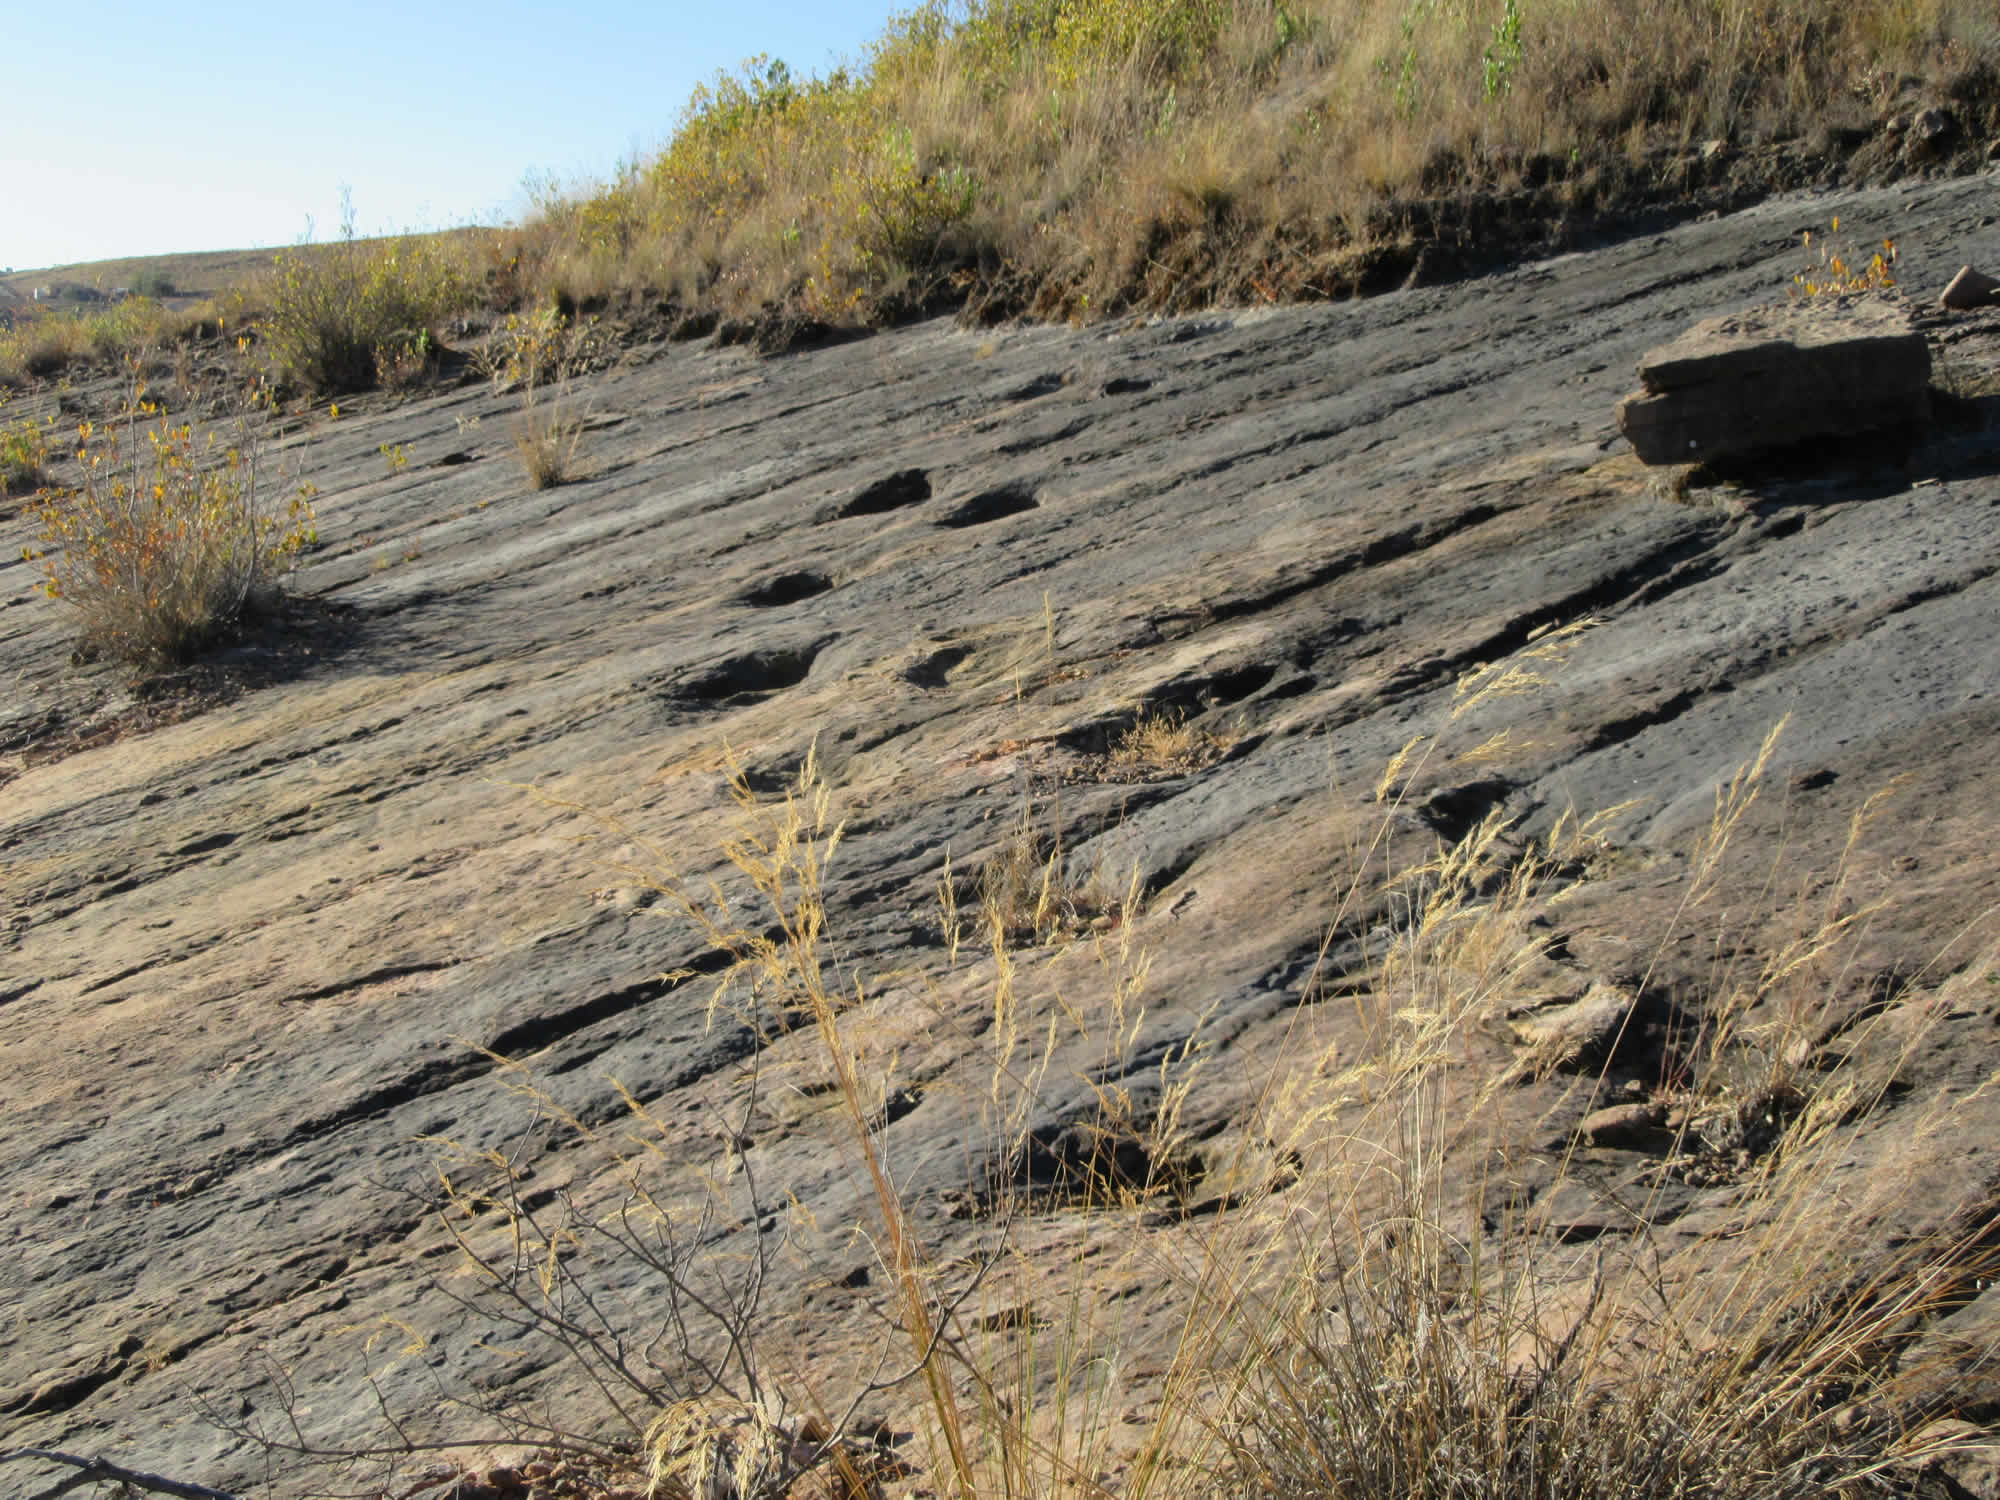 Huayllas Mountain and the Dinosaur footprints